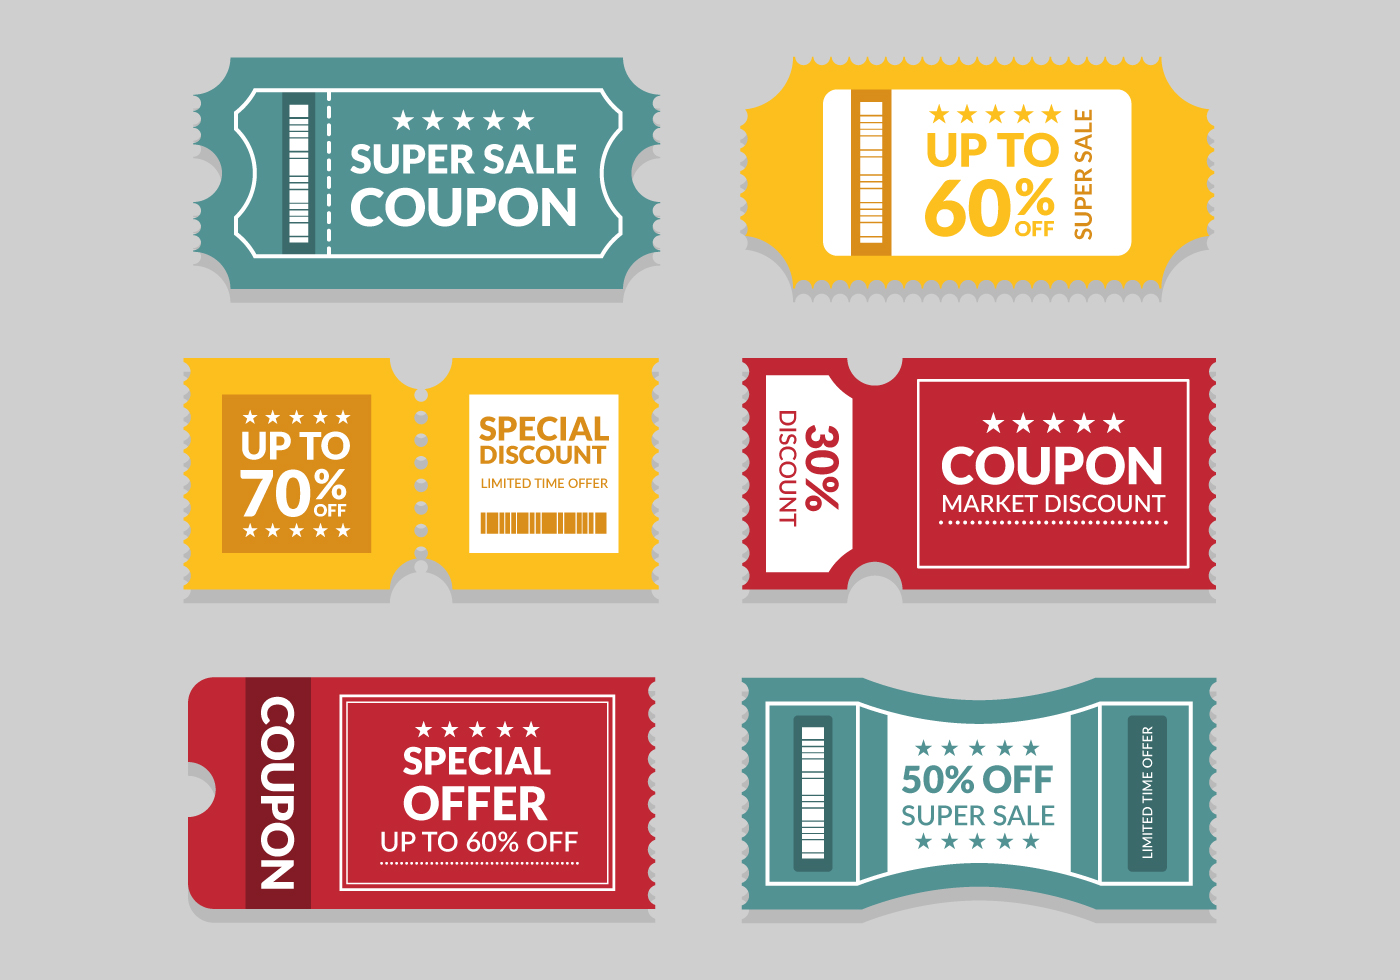 Pro Tips in Couponing